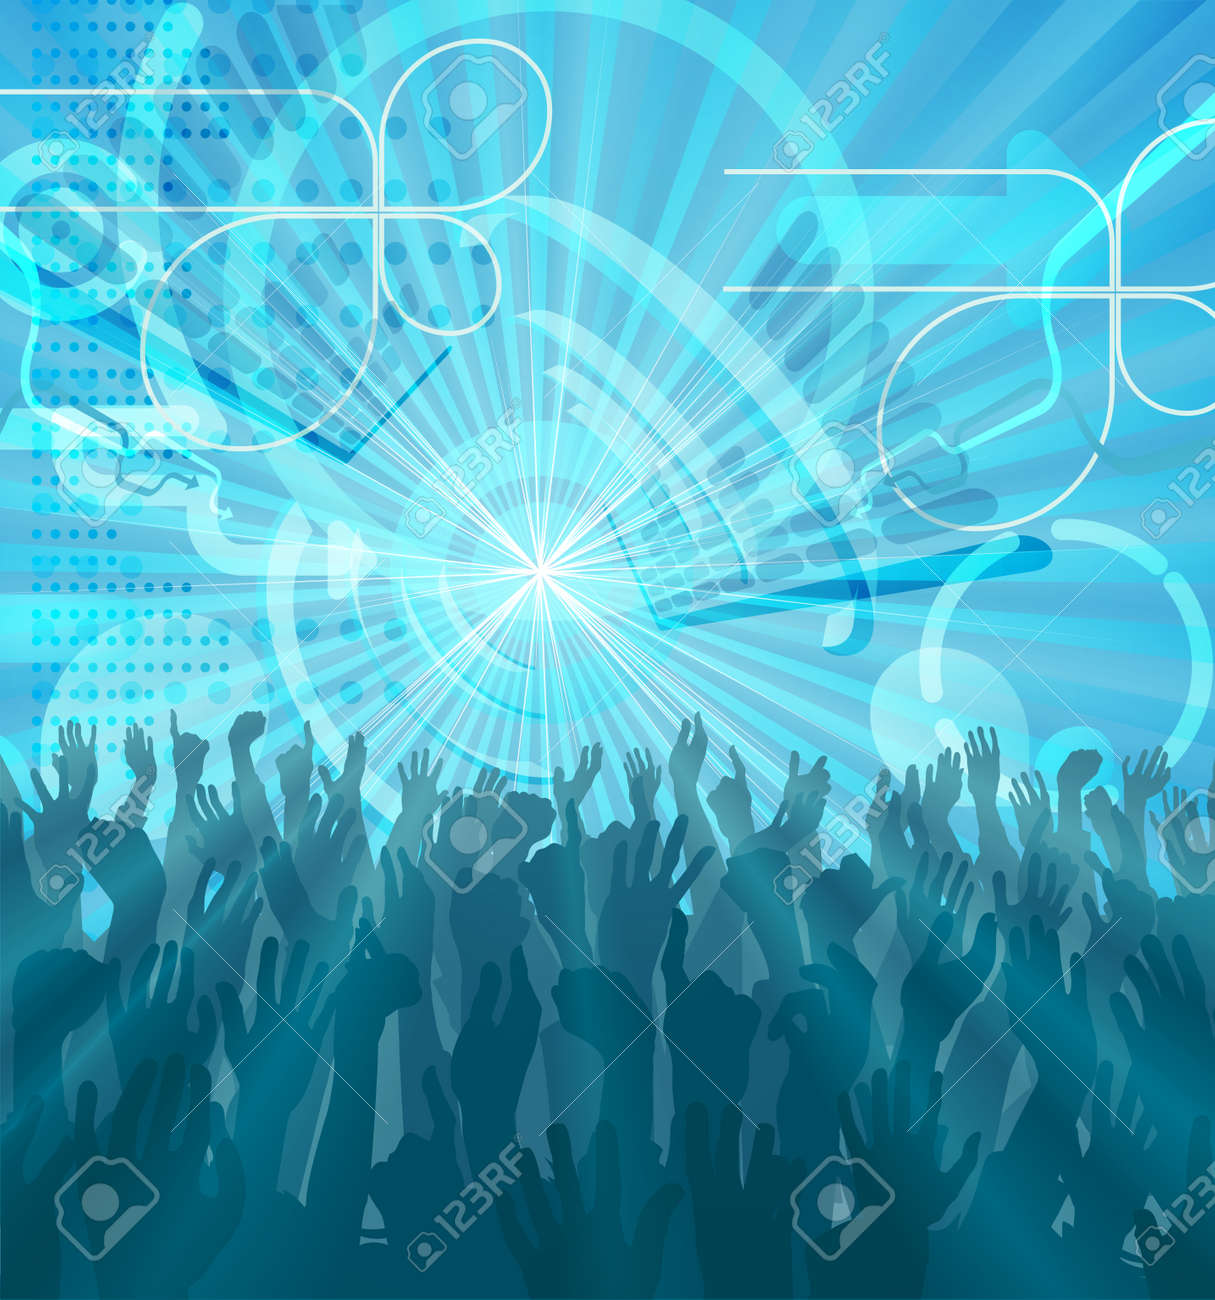 A Blue Abstract Party Crowd With Hands Raised Dancing Party Flyer ...